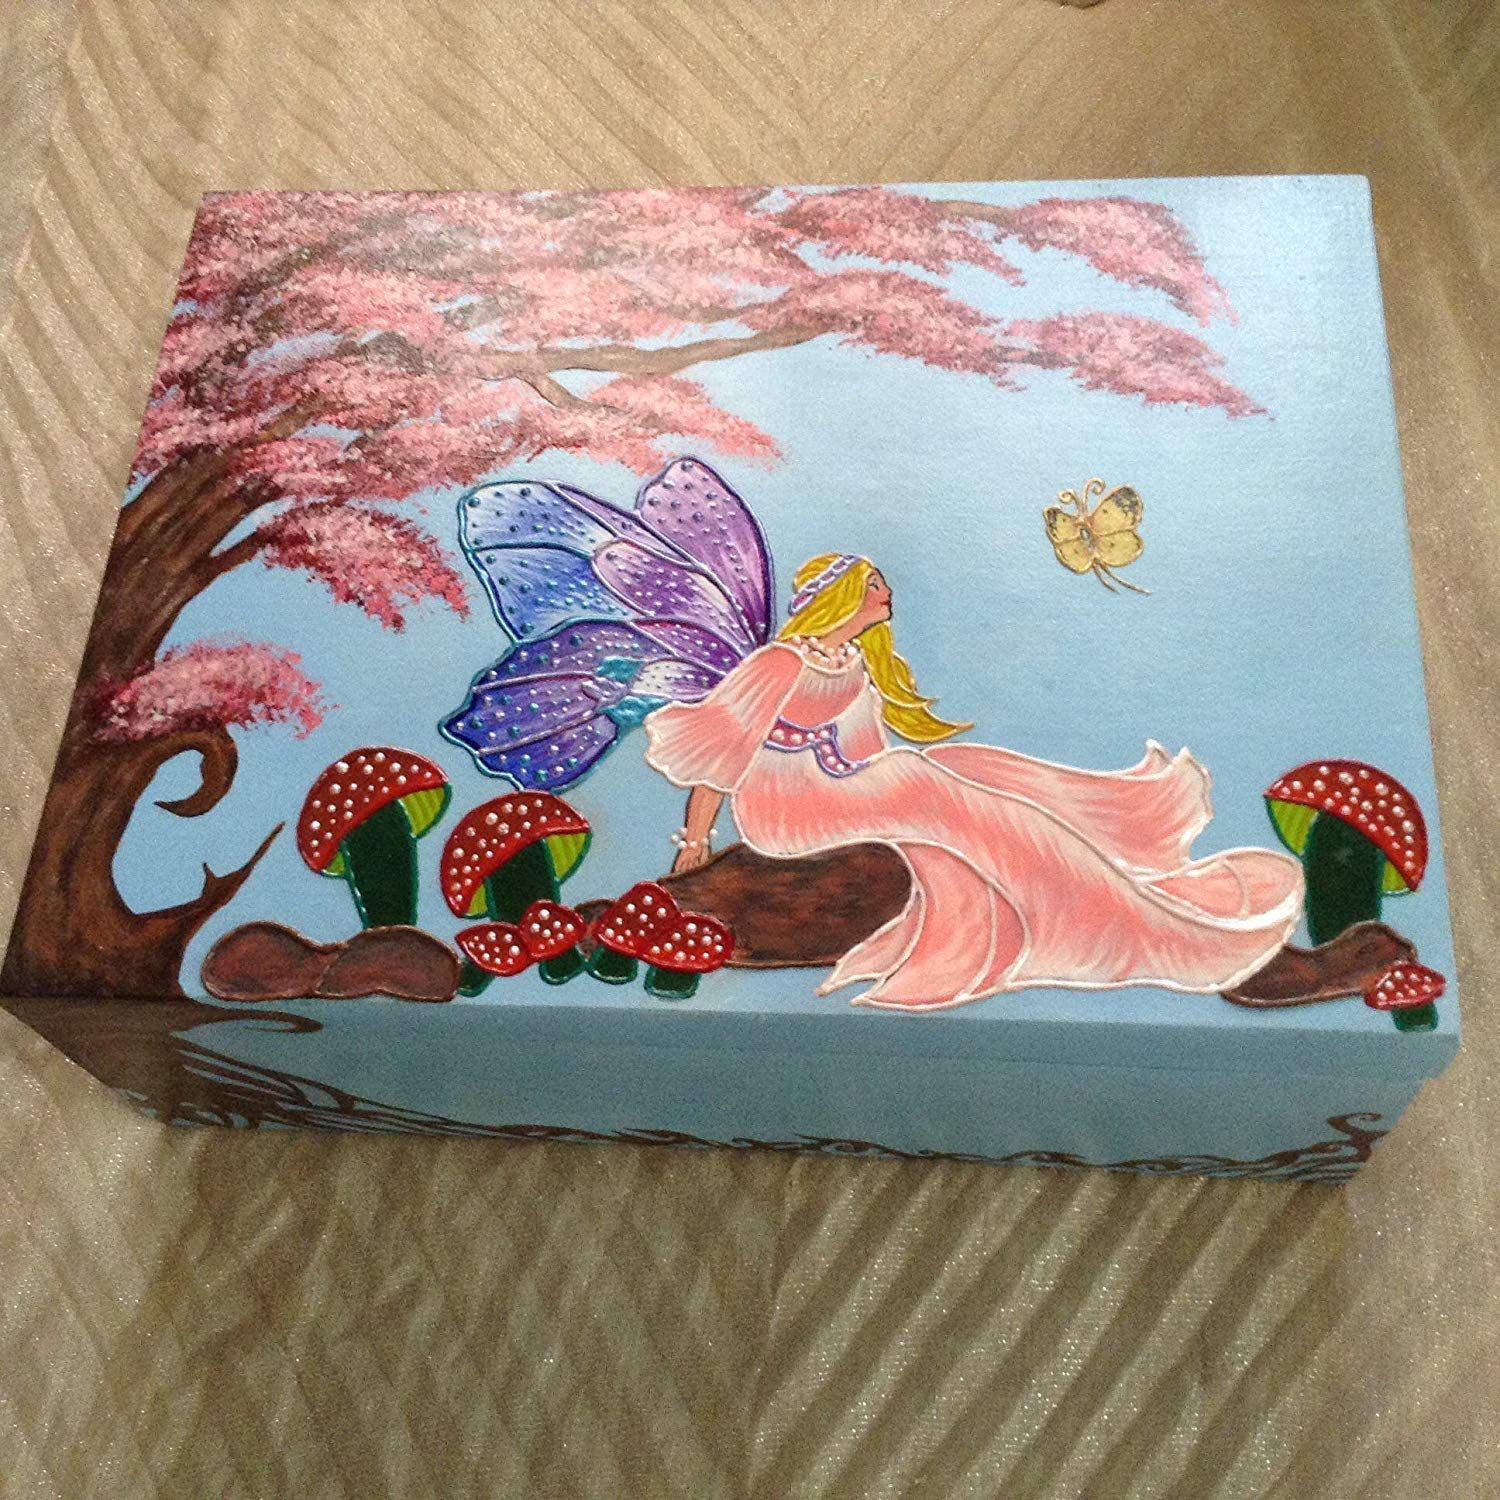 Cheap Wooden Box Painting Ideas Find Wooden Box Painting Ideas Deals On Line At Alibaba Com